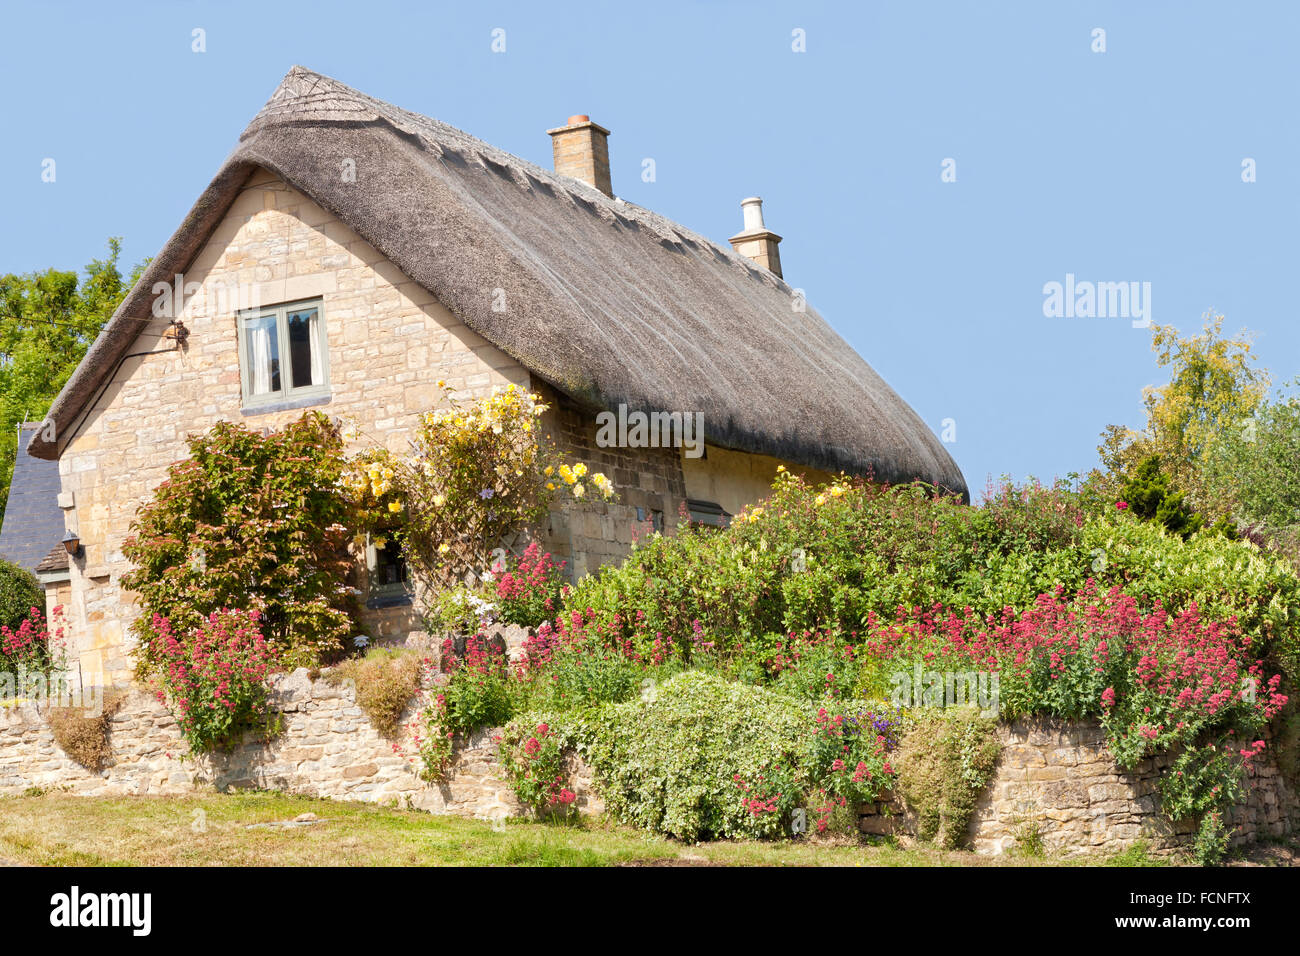 Traditional Old Thatched Roof Stone Cotswold Cottage